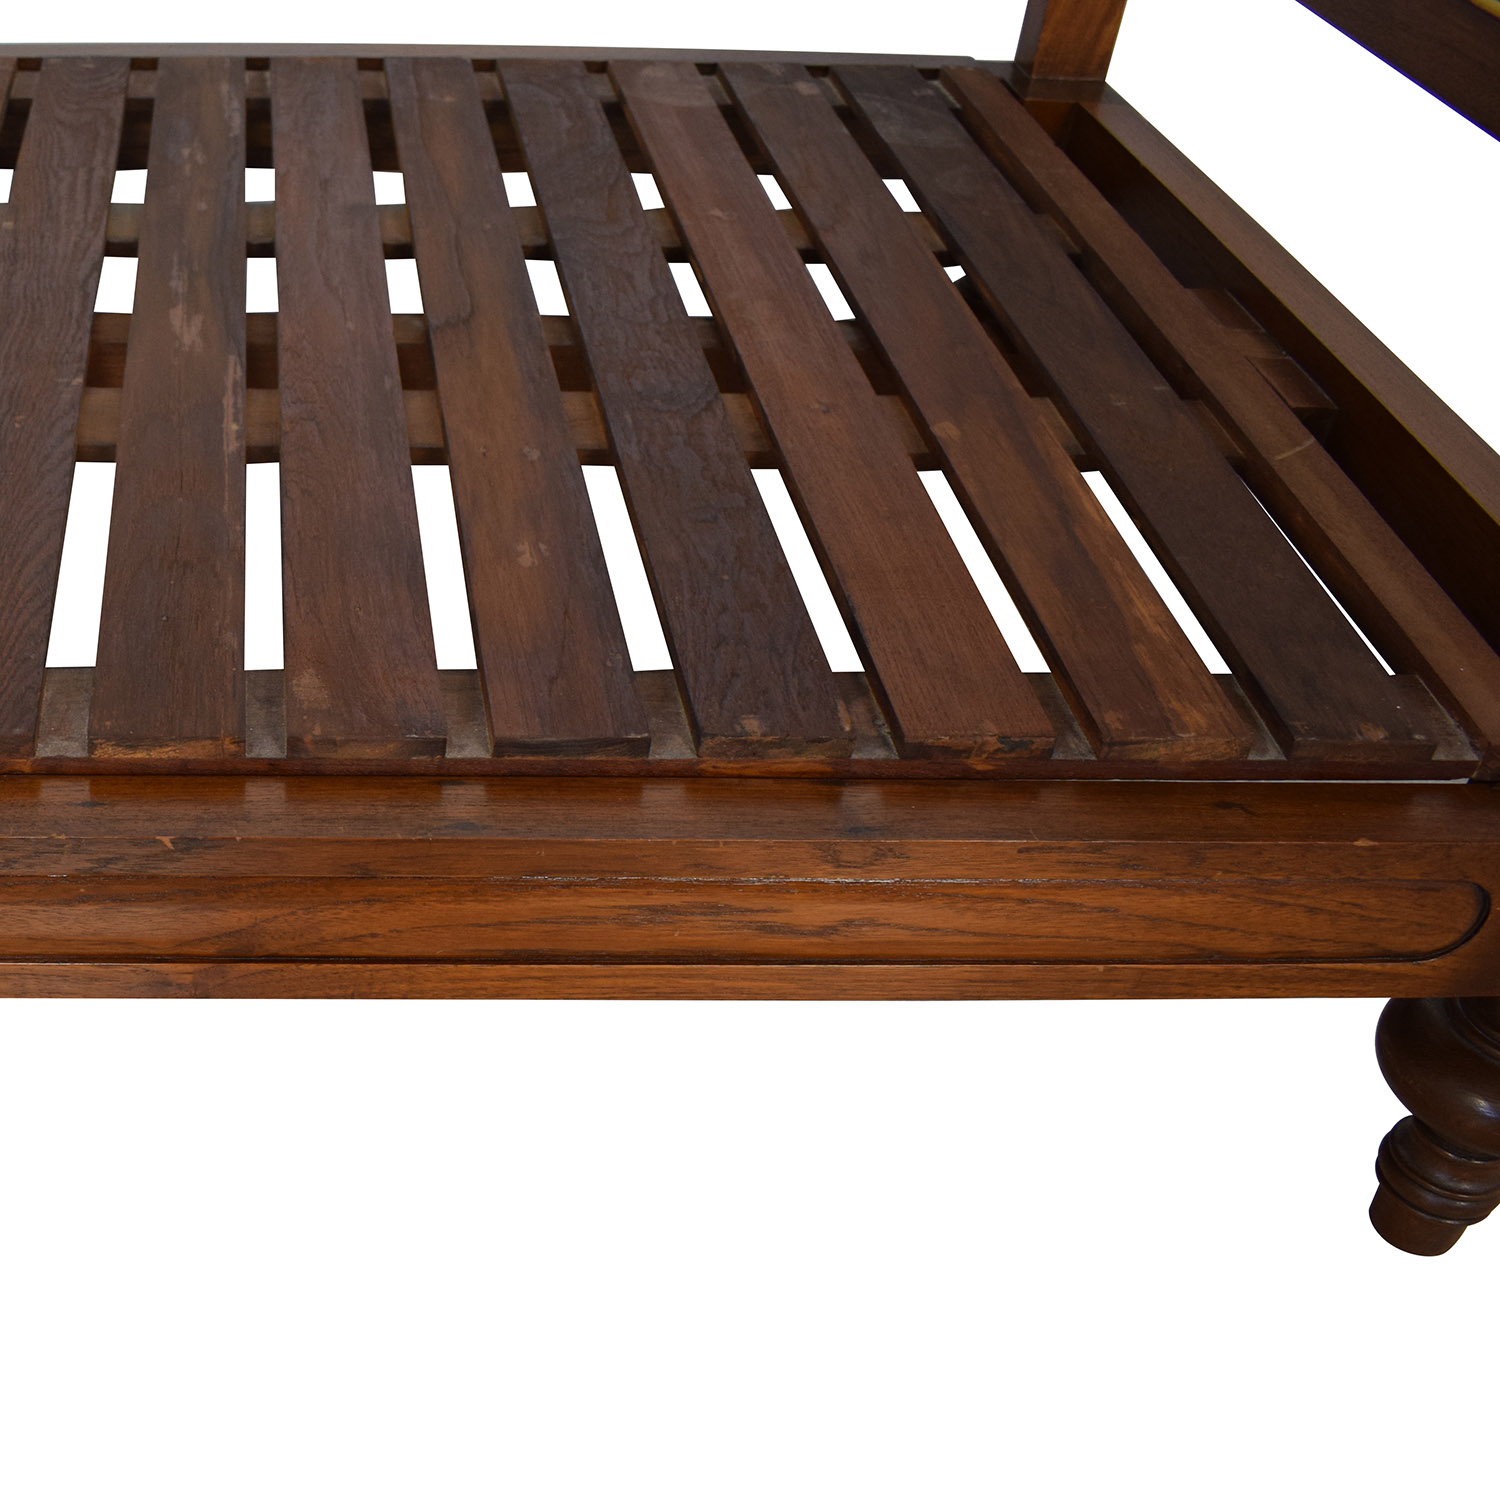 Pleasant 83 Off Colonial Cane Sleigh Twin Bed Beds Spiritservingveterans Wood Chair Design Ideas Spiritservingveteransorg